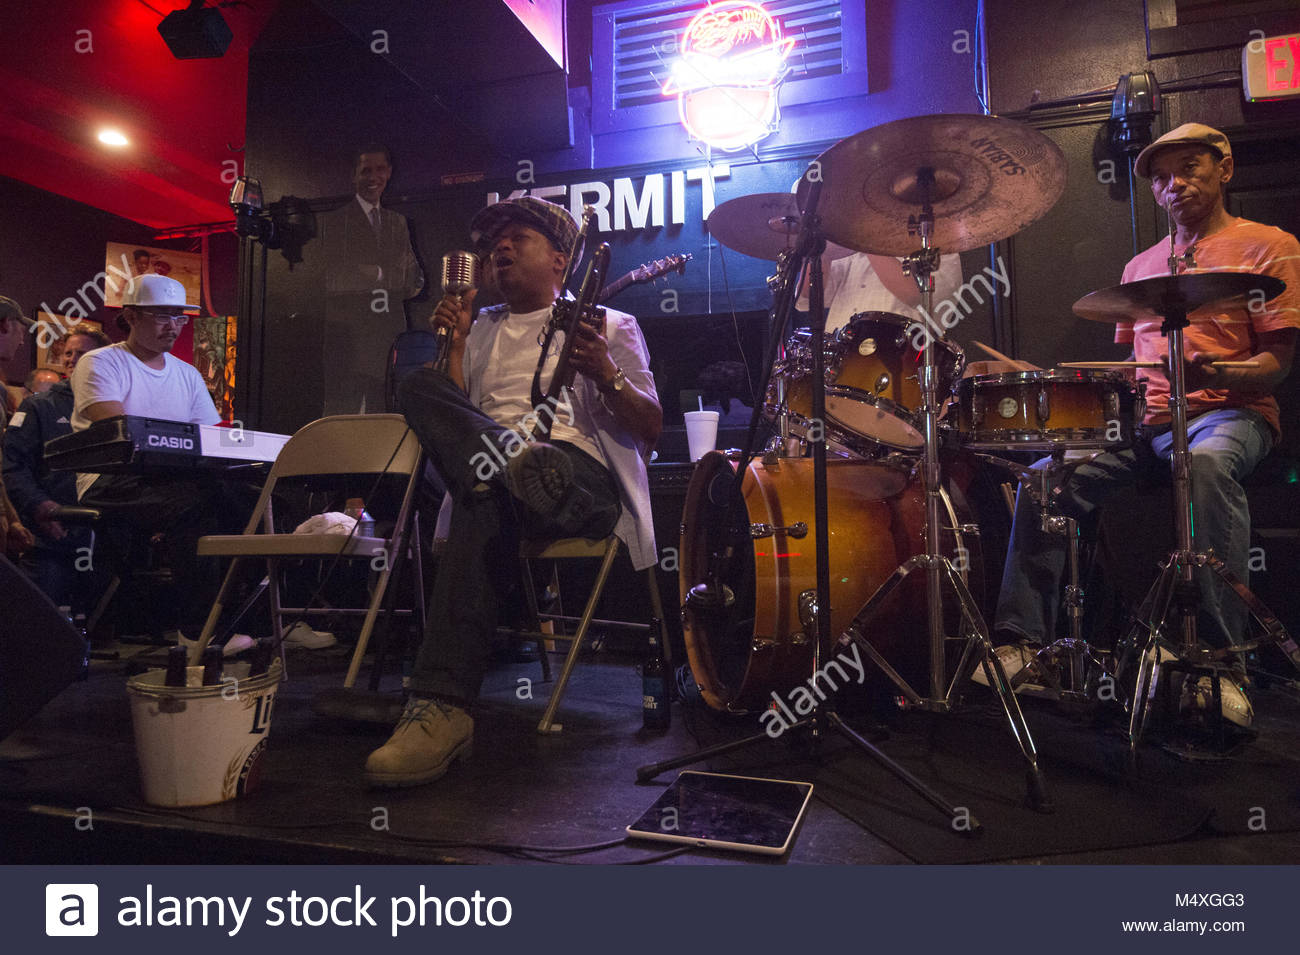 Etats-unis, Louisiane, Nouvelle Orléans, le Marigny, Kermit's Treme Mère Lounge Photo Stock